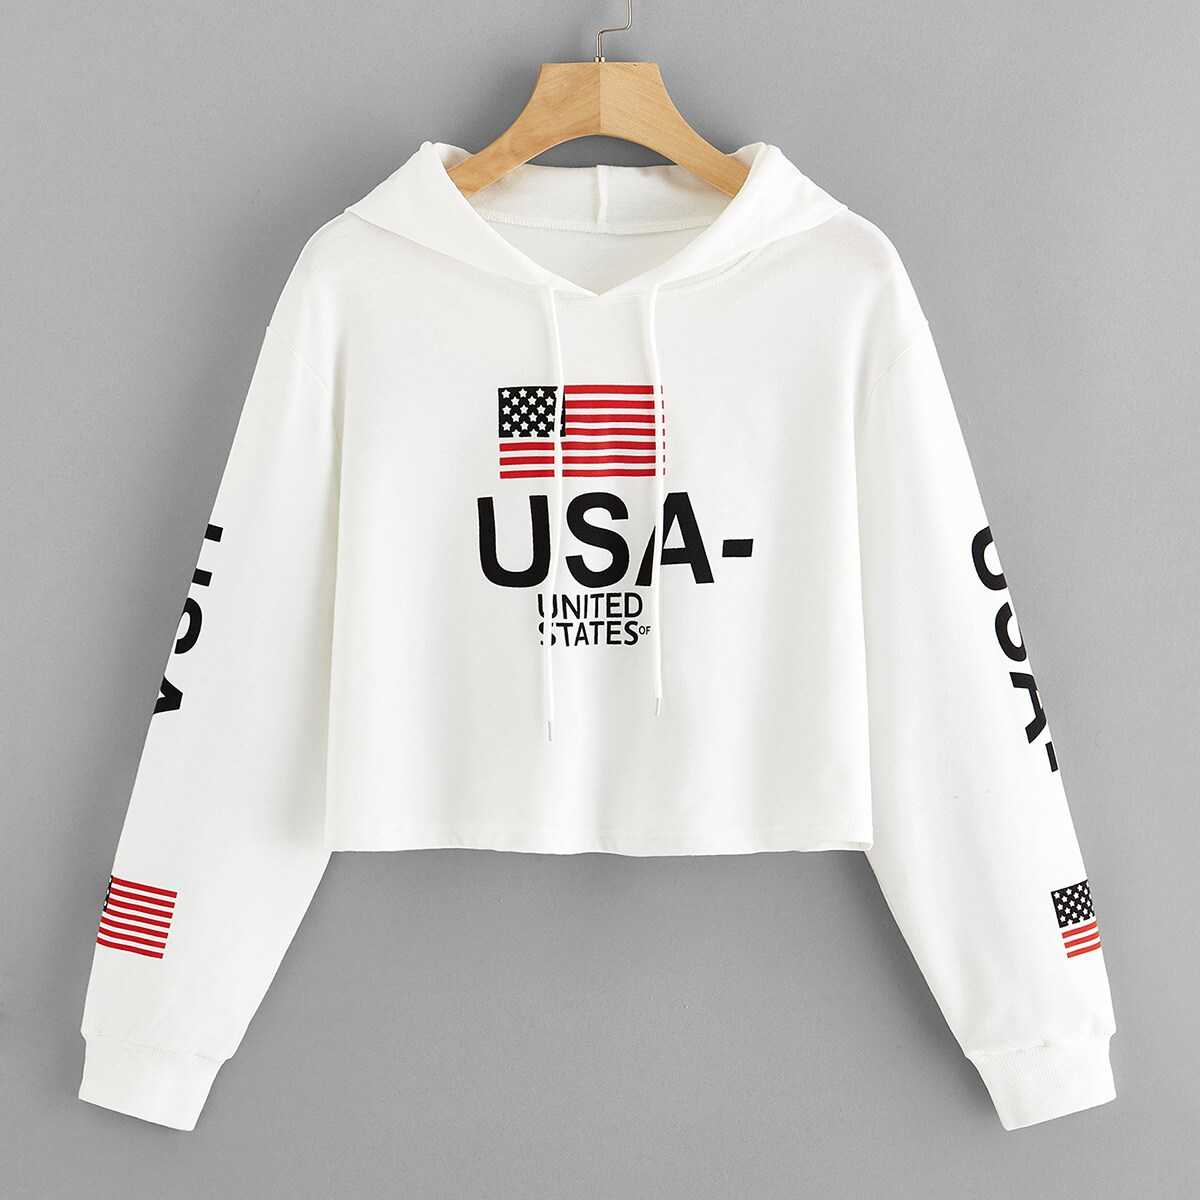 1Plus1 Girls Letter Print Drawstring Crop Hoodie in White by ROMWE on GOOFASH